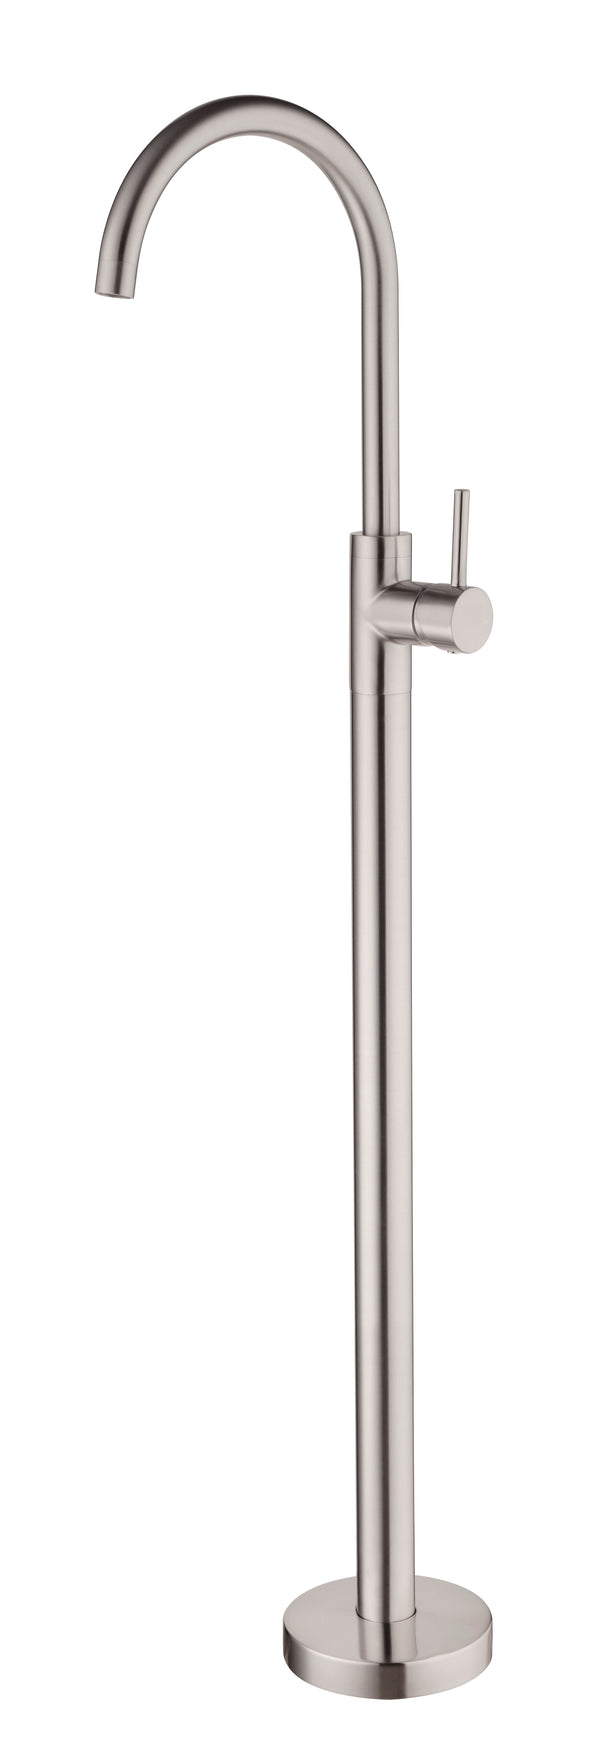 RONDO BRUSHED NICKEL FREE STANDING BATH MIXER